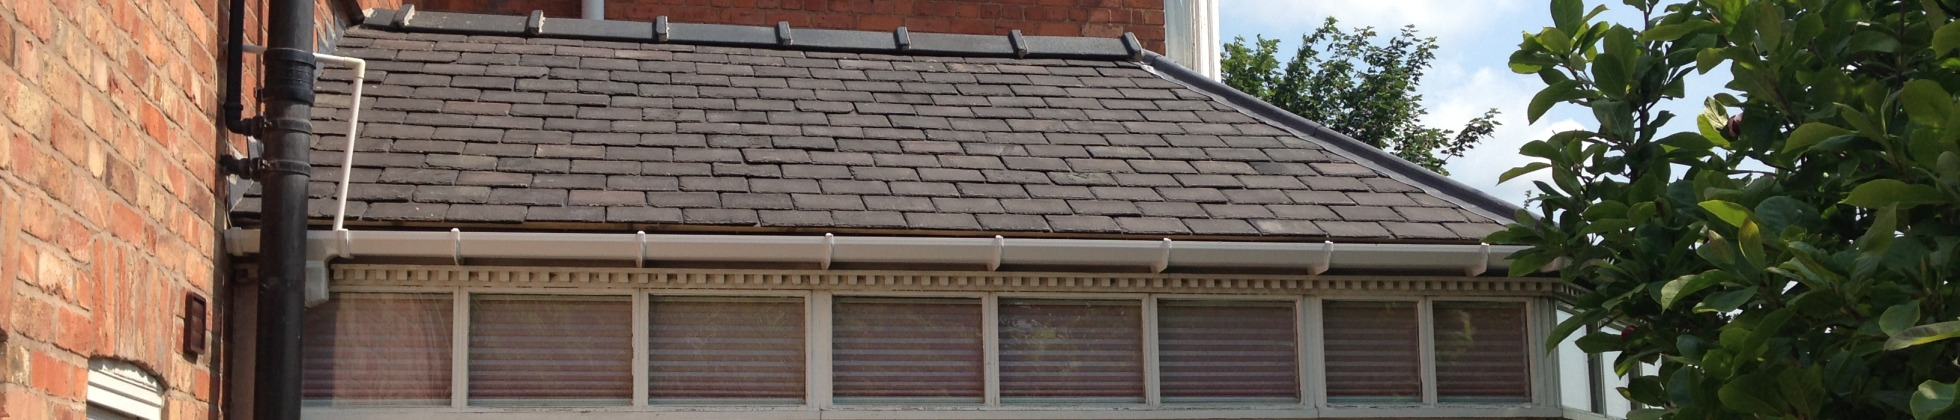 Slate conservatory roof renovation. Leicester